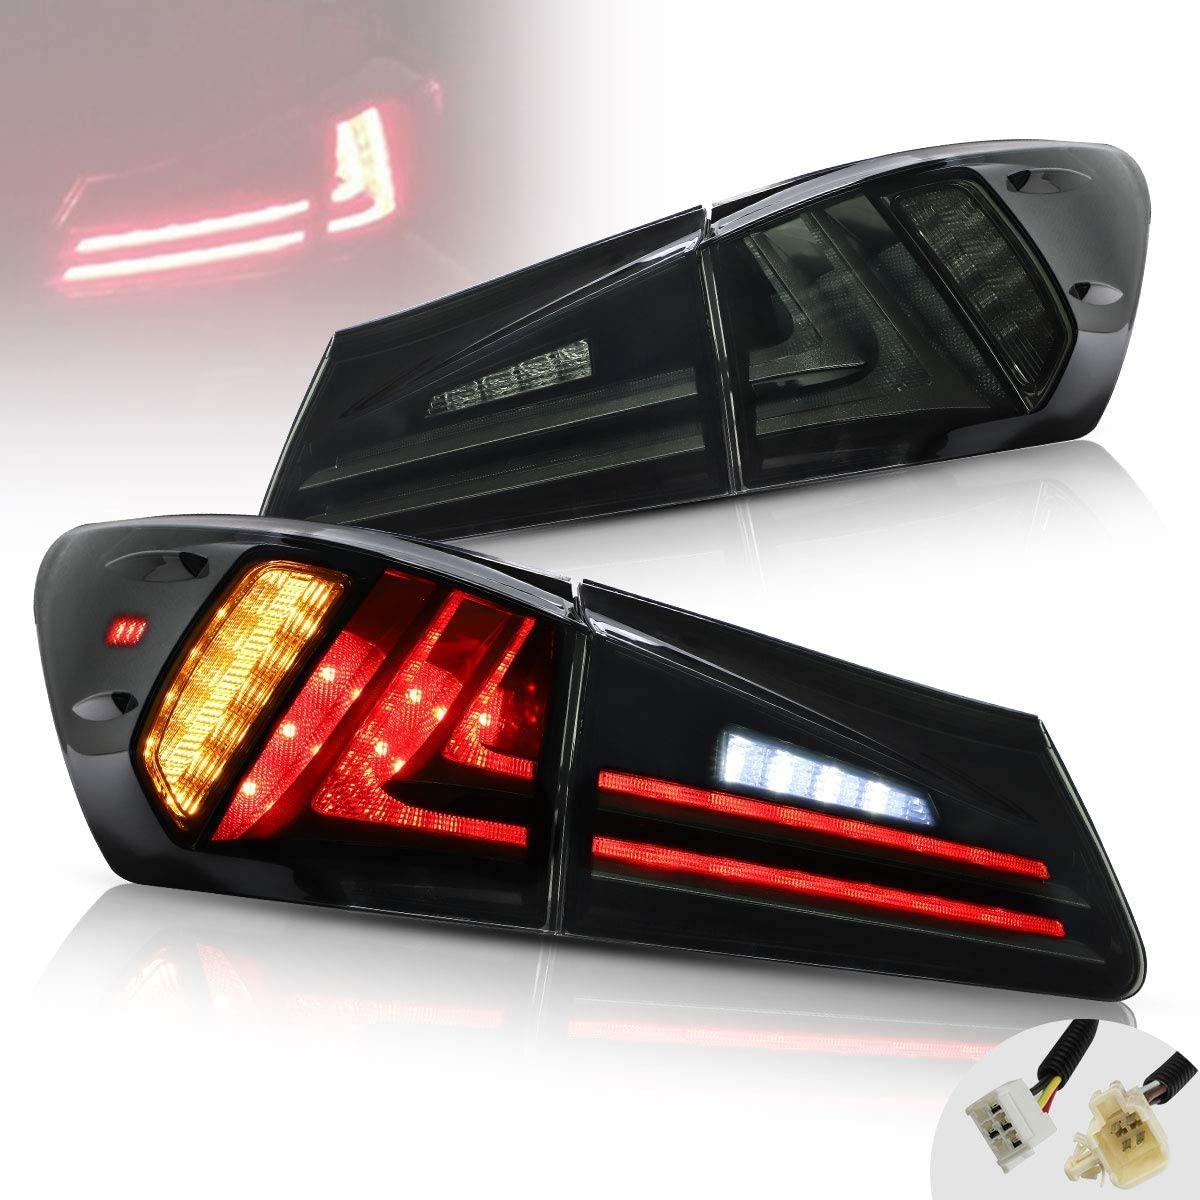 USEKA LED Back Light 2006-2012 For IS 250 350 LED DRL Rear lights Red And Smoked Assembly